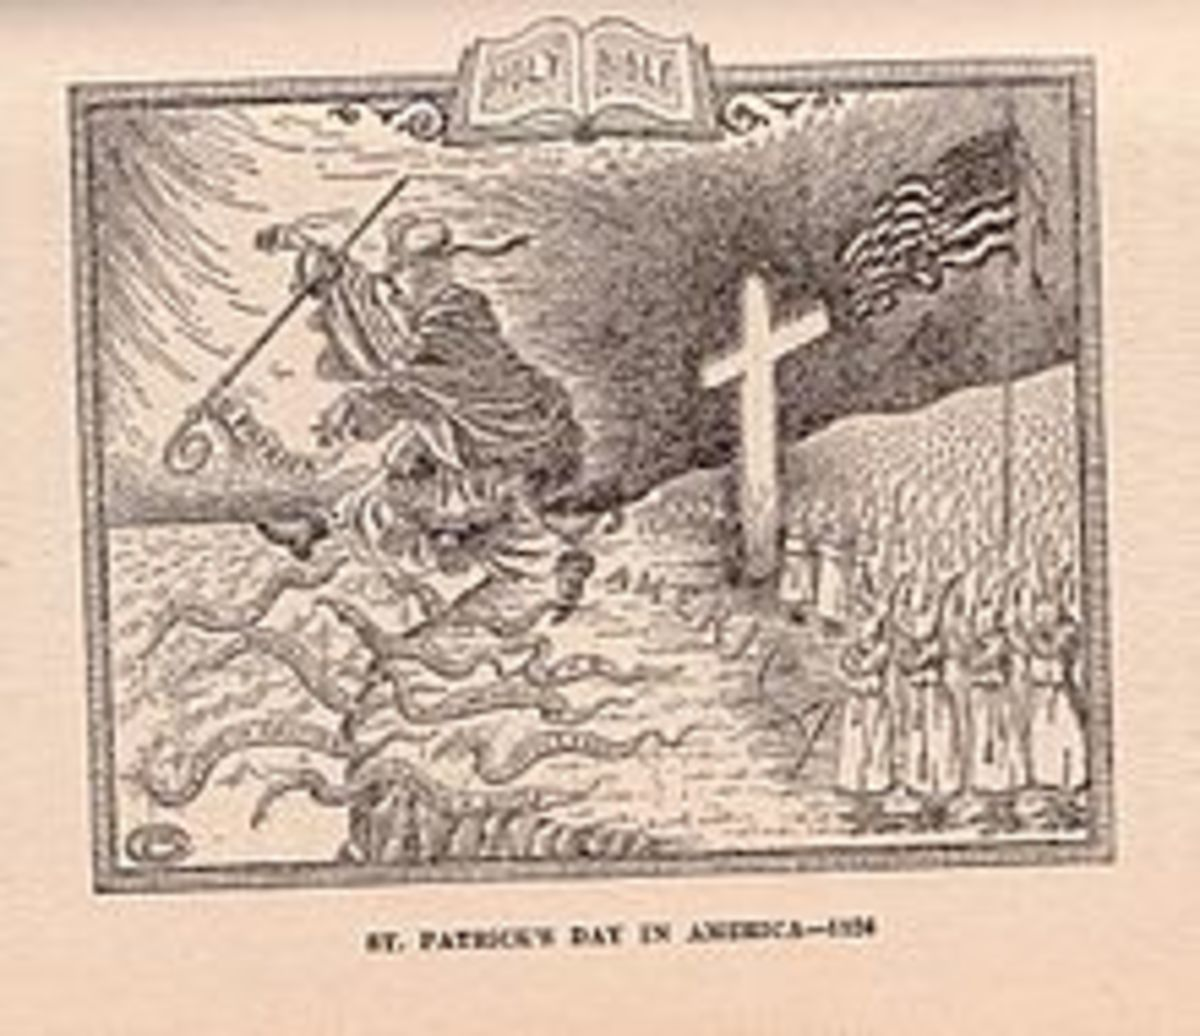 "In this 1926 cartoon the Ku Klux Klan chases the Roman Catholic Church, personified by St. Patrick, from the shores of America. Among the ""snakes"" are various supposed negative attributes of the Church, including superstition, union of church and sta"